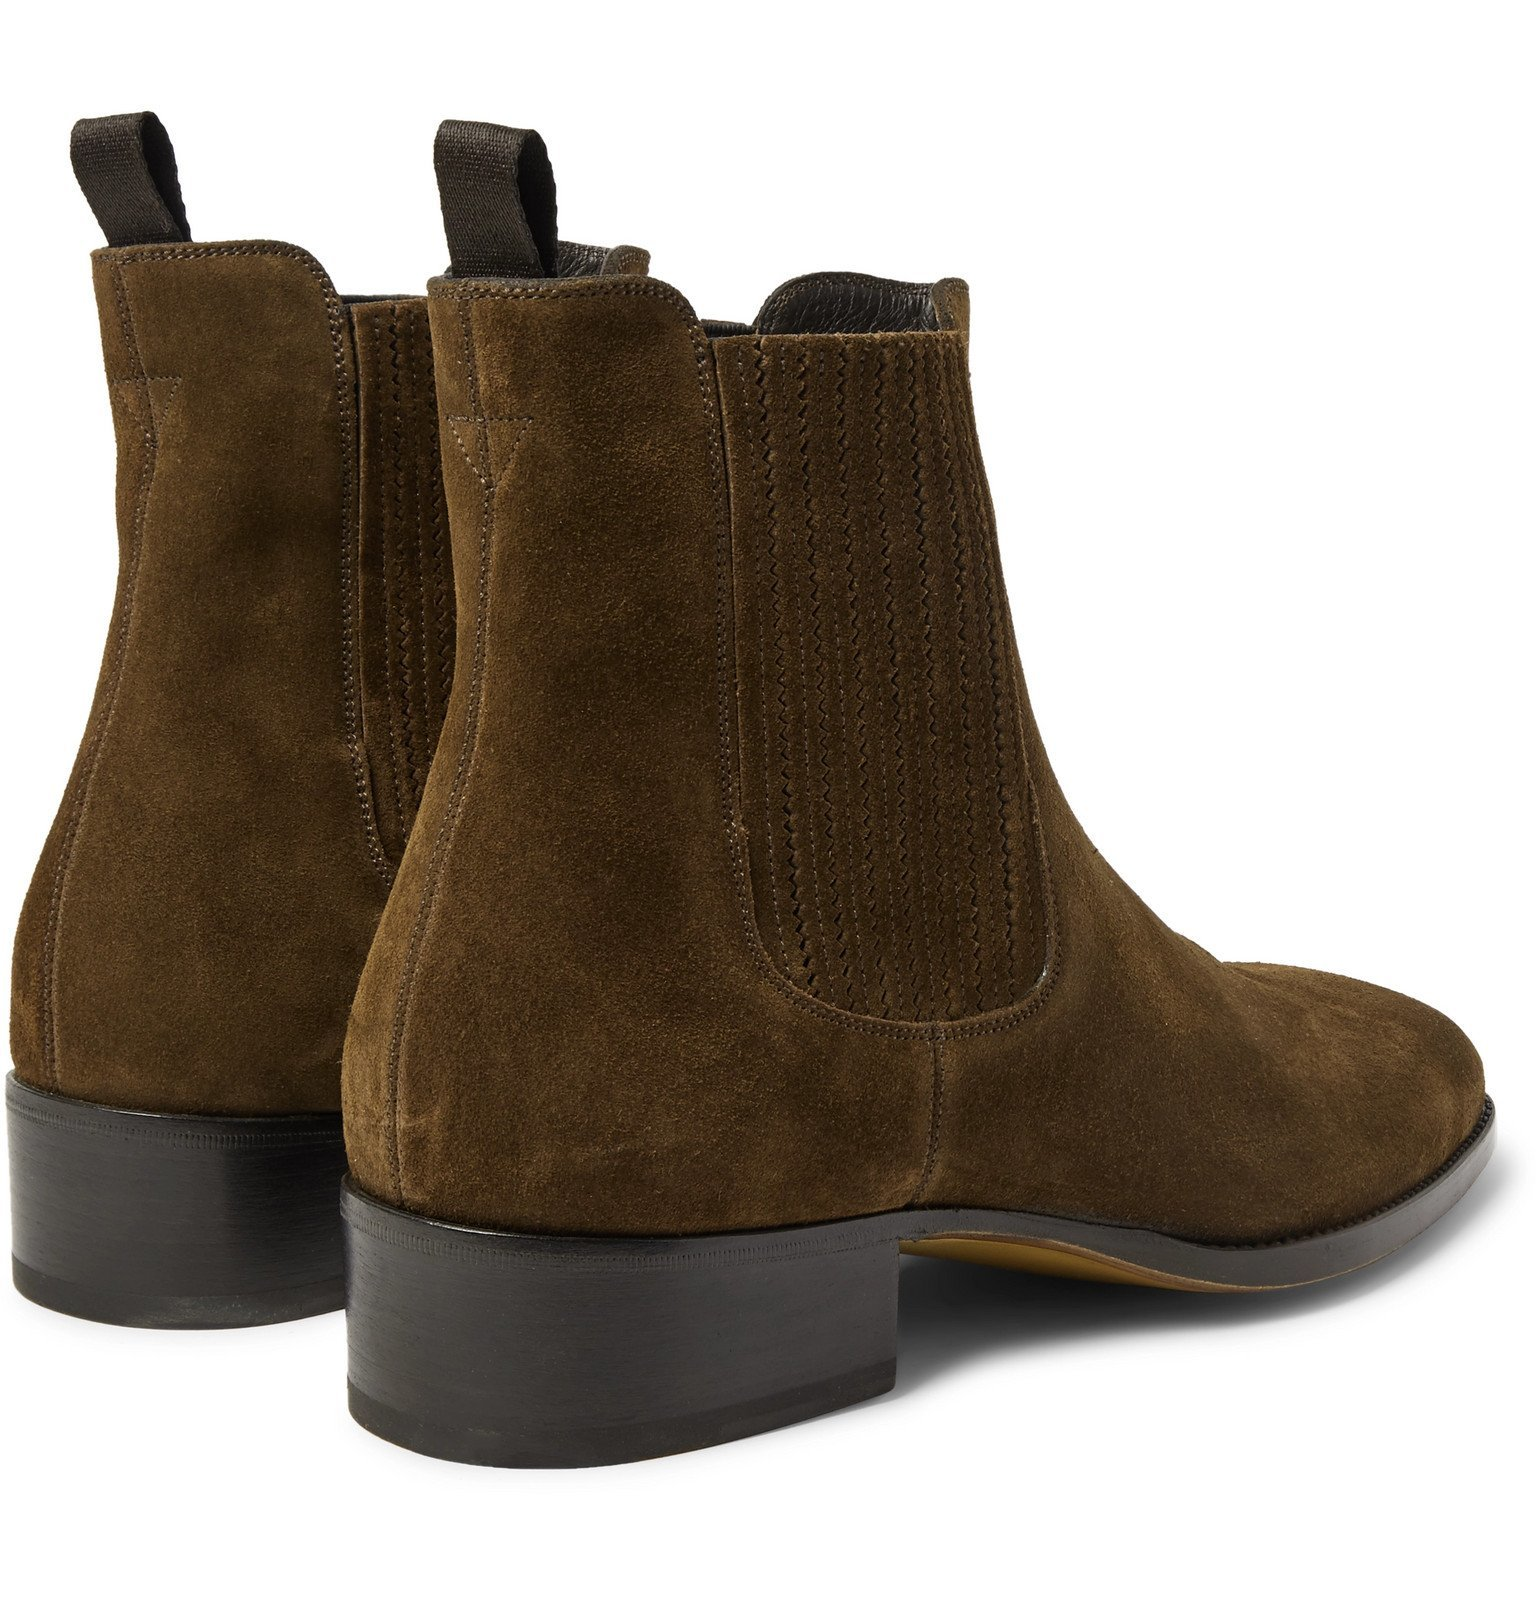 TOM FORD - Suede Chelsea Boots - Brown